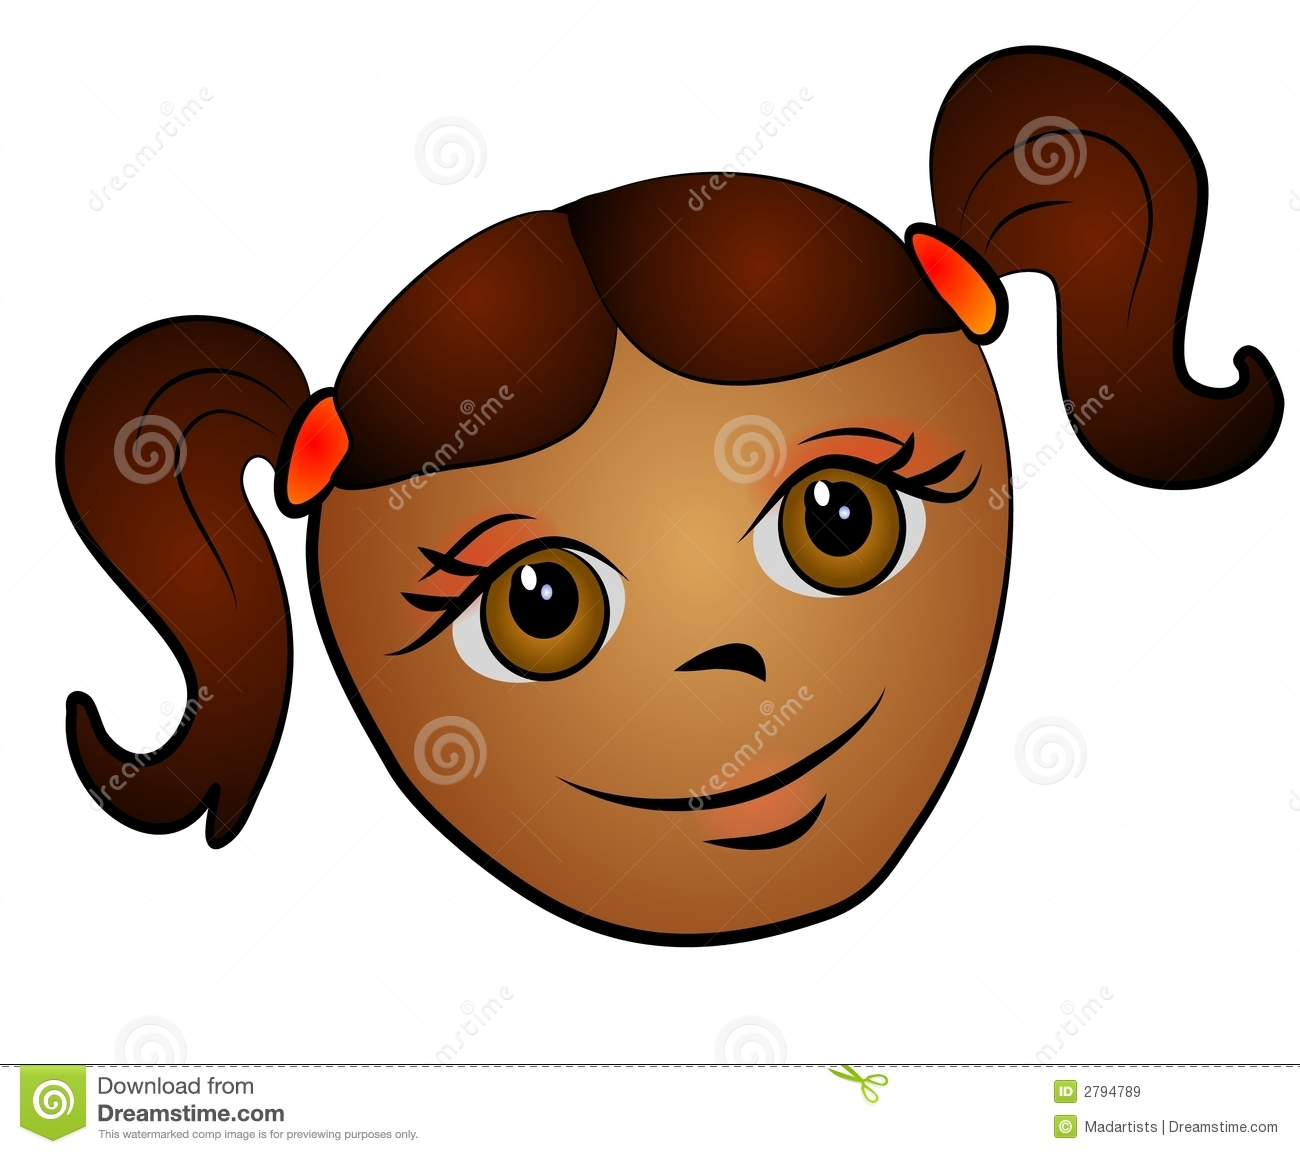 Girl with big eyes clipart clip art freeuse Girl with big eyes clipart - ClipartFest clip art freeuse